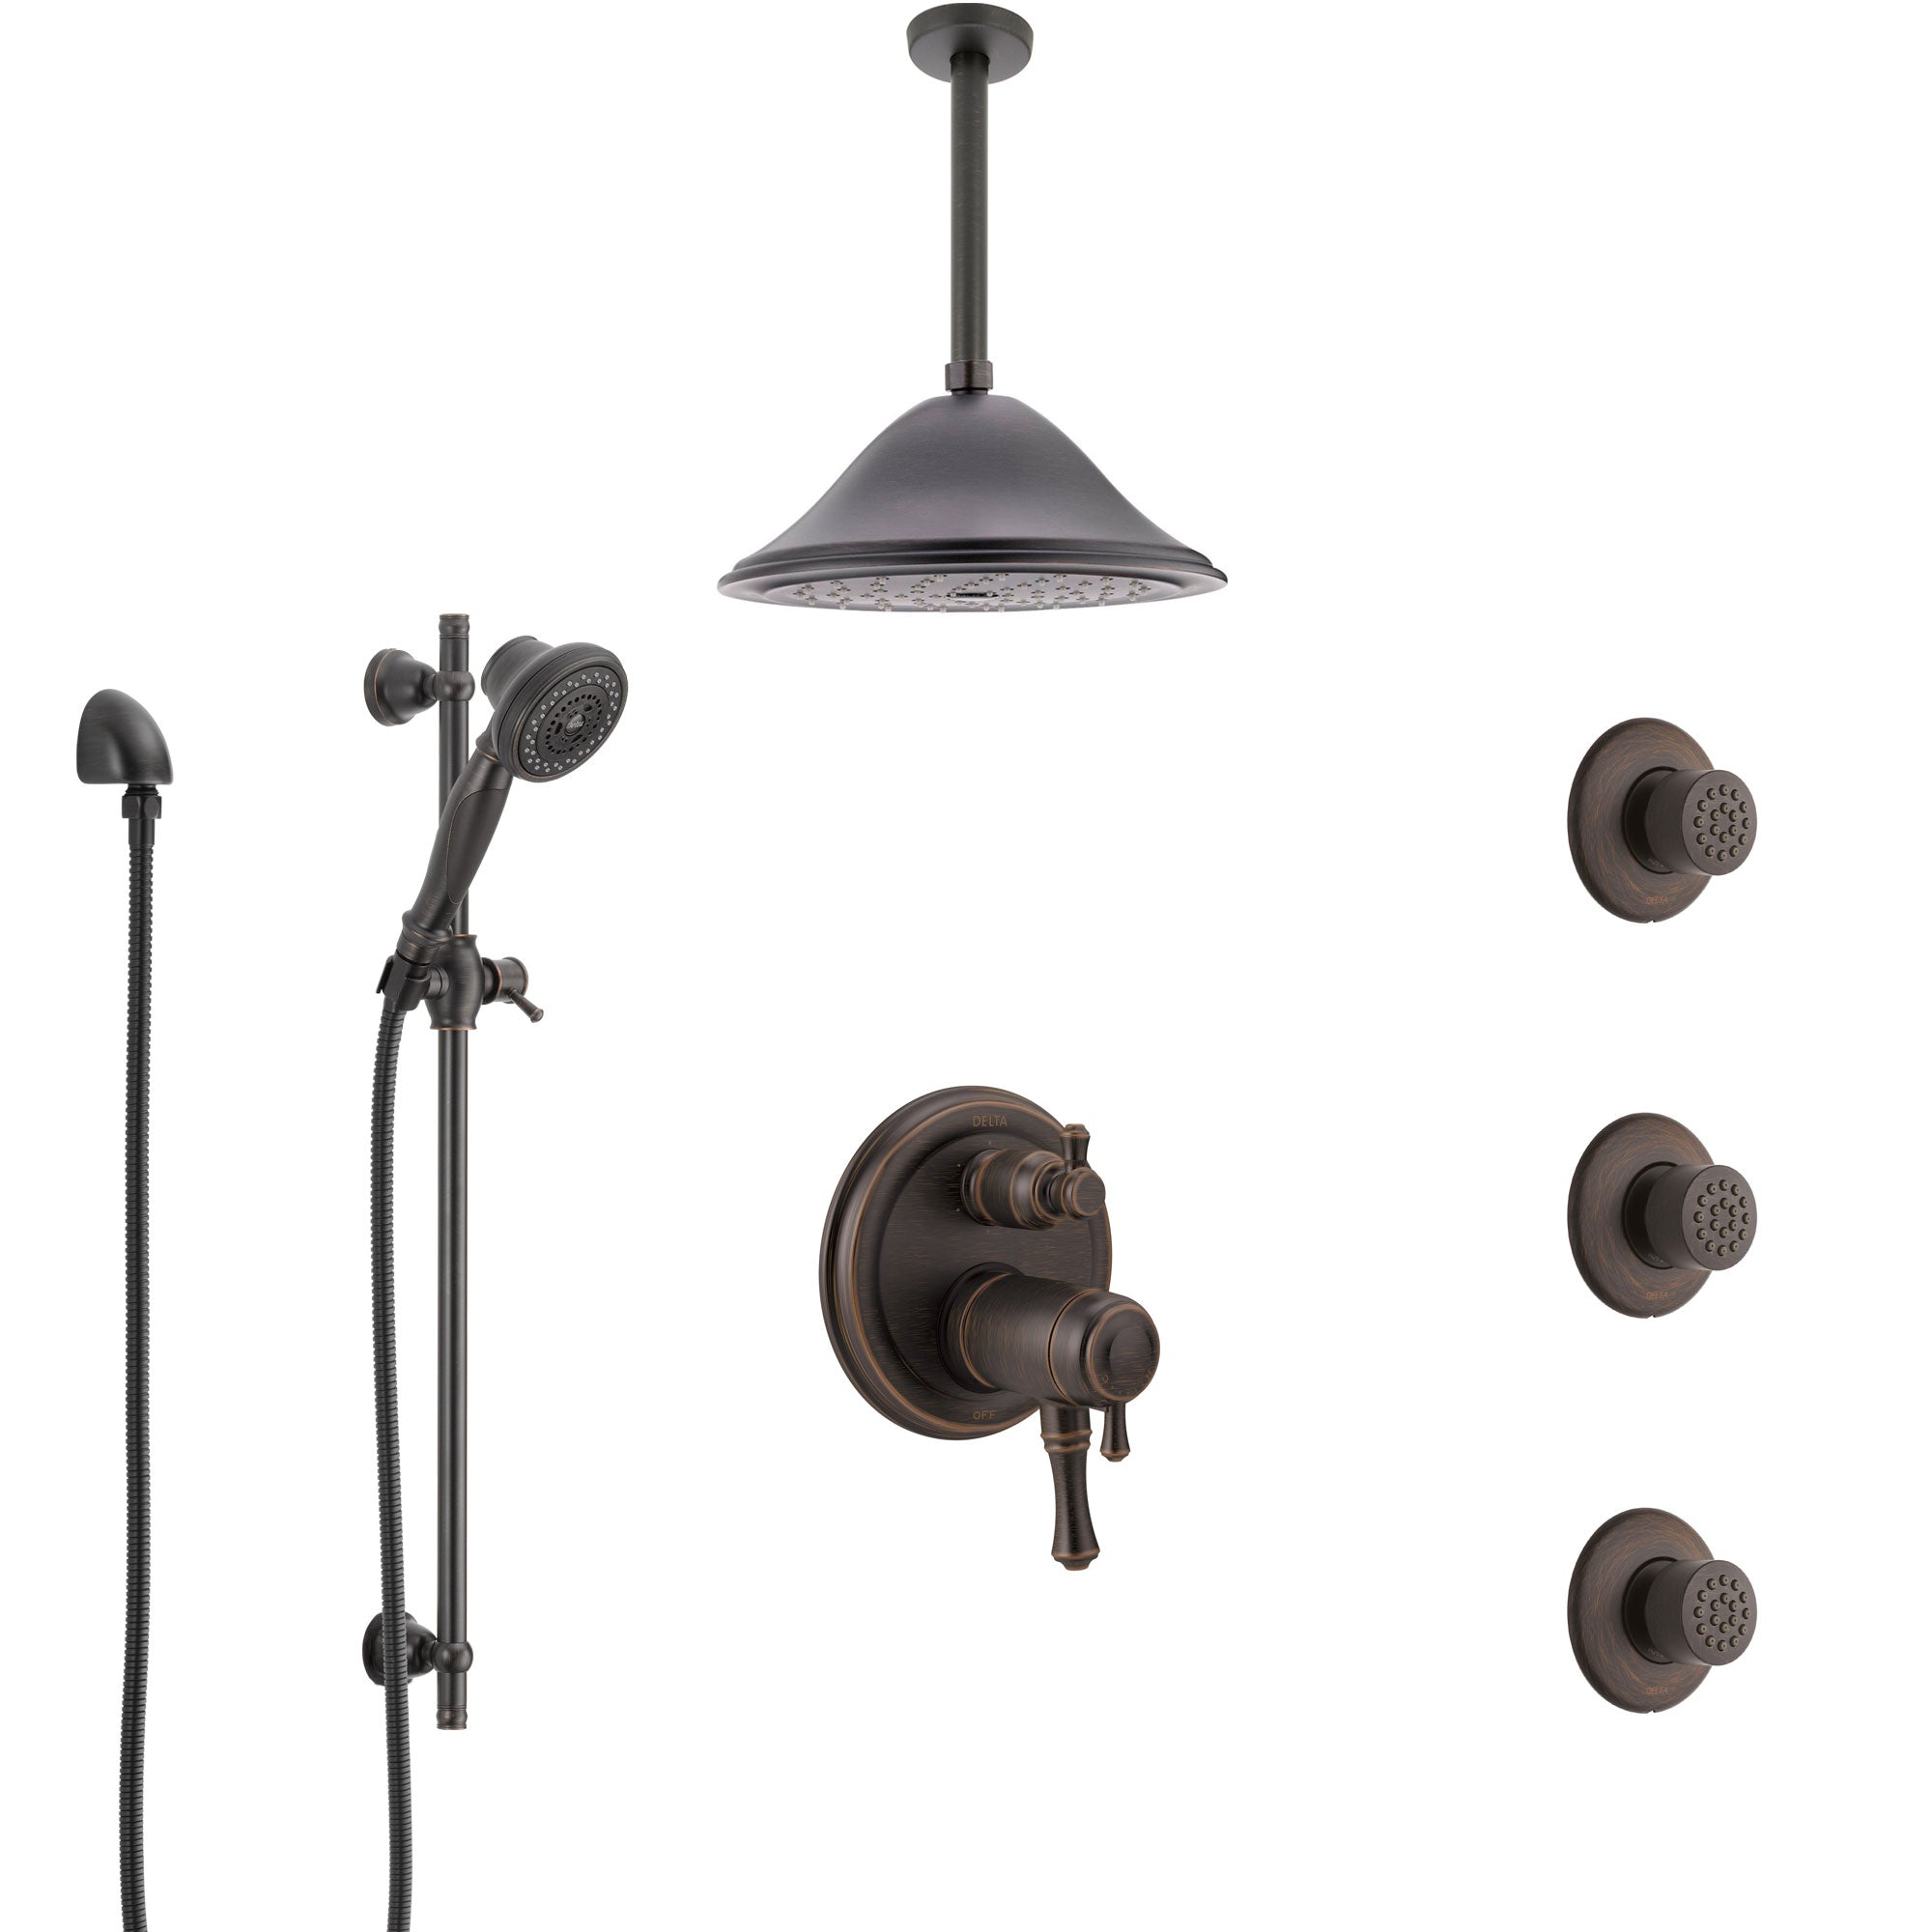 Delta Cassidy Venetian Bronze Dual Thermostatic Control Integrated Diverter Shower System, Ceiling Showerhead, 3 Body Sprays, Hand Spray SS27T997RB7